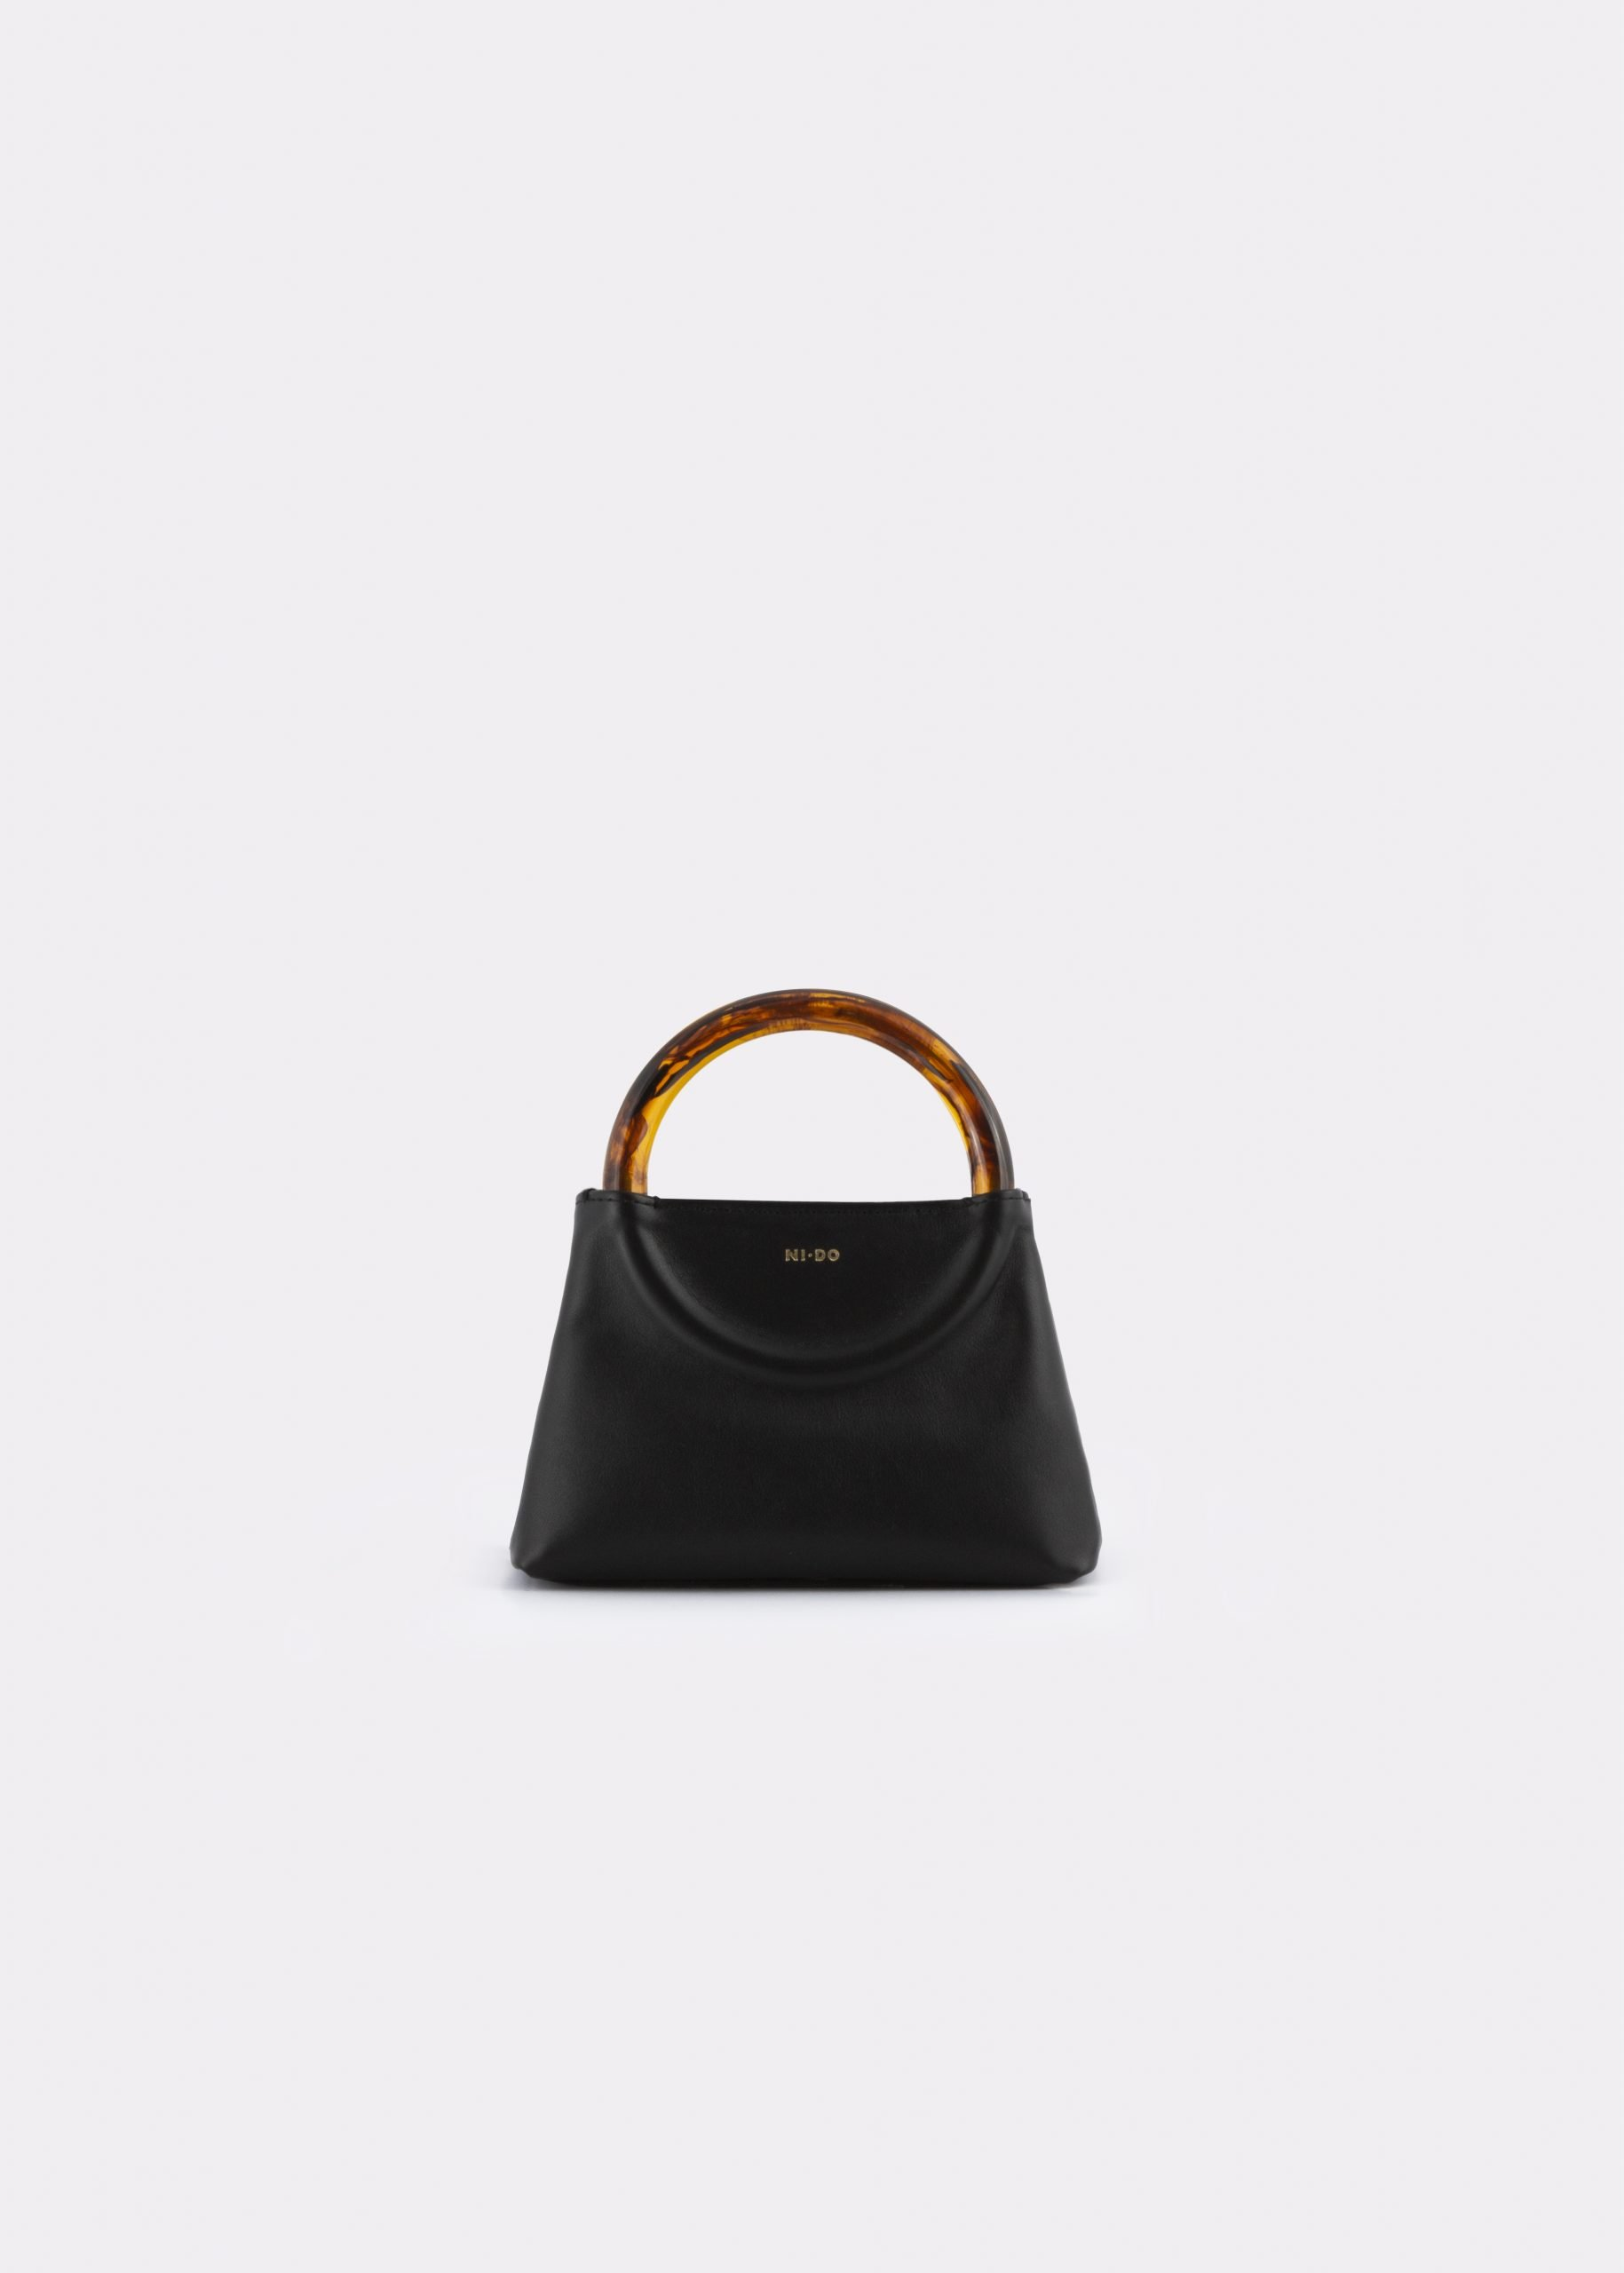 NIDO Bolla Micro bag black leather Amber_front view